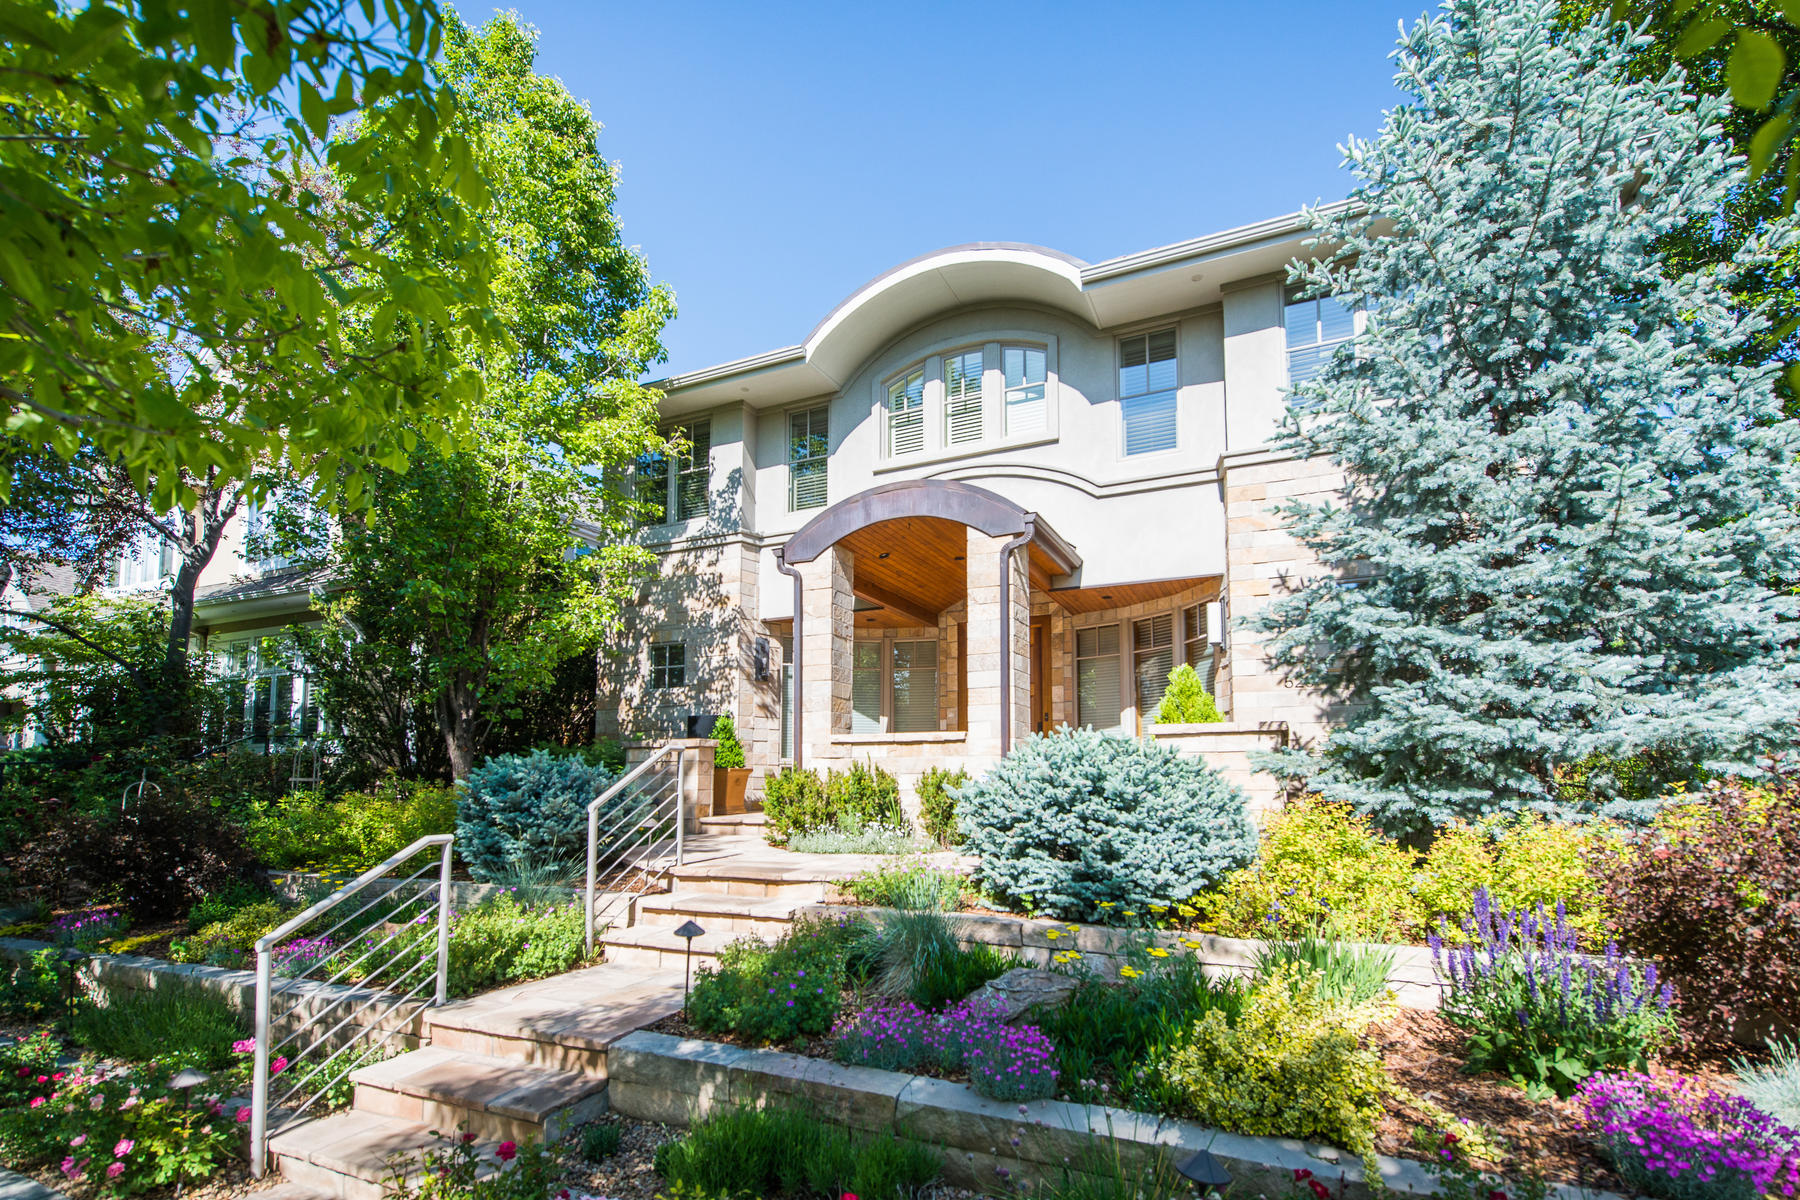 Single Family Homes for Sale at 520 Madison Street Denver, Colorado 80206 United States